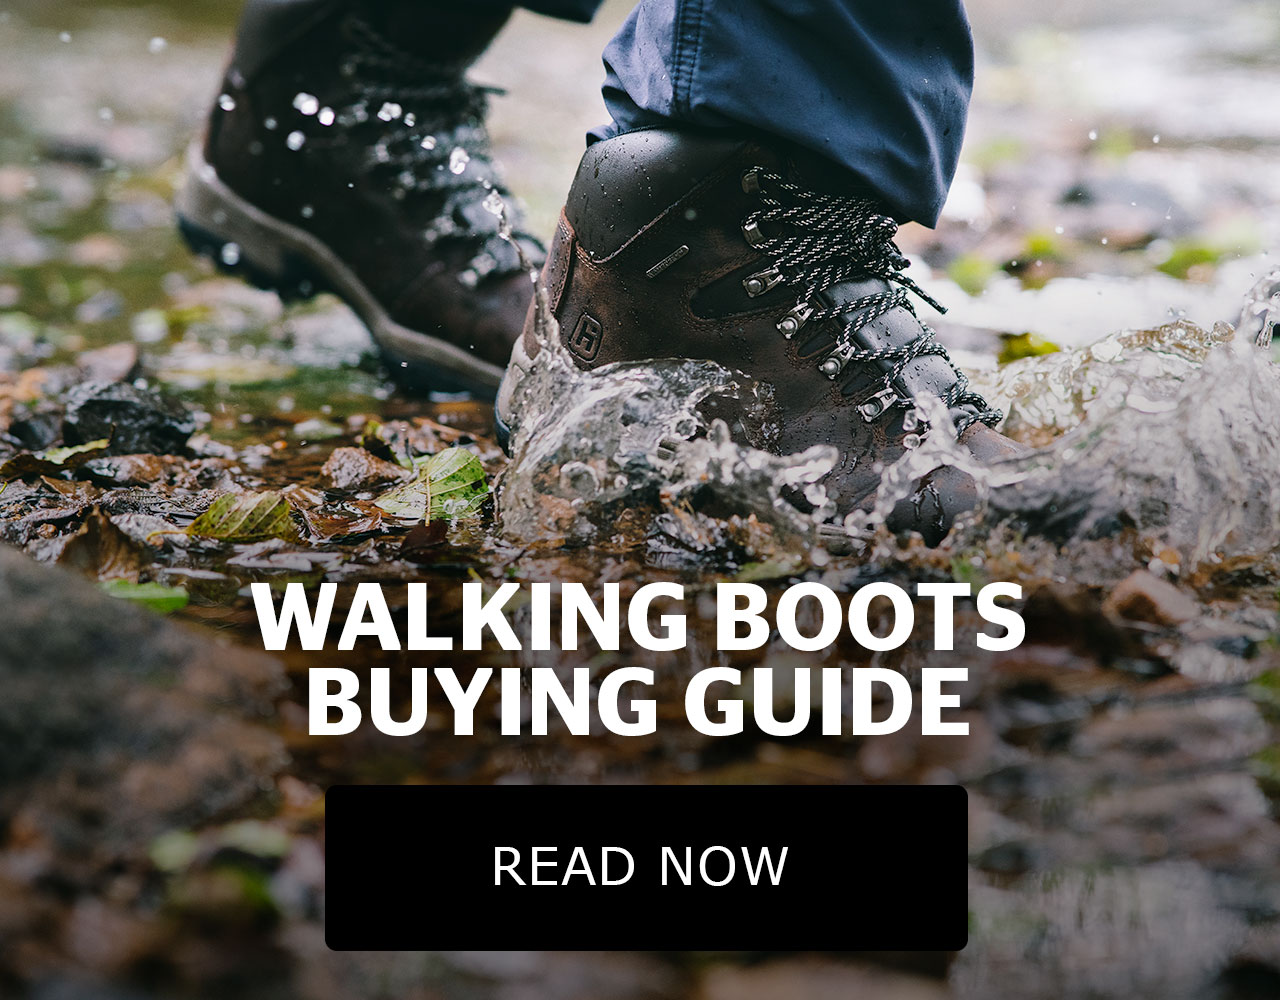 Walking boots buying guide